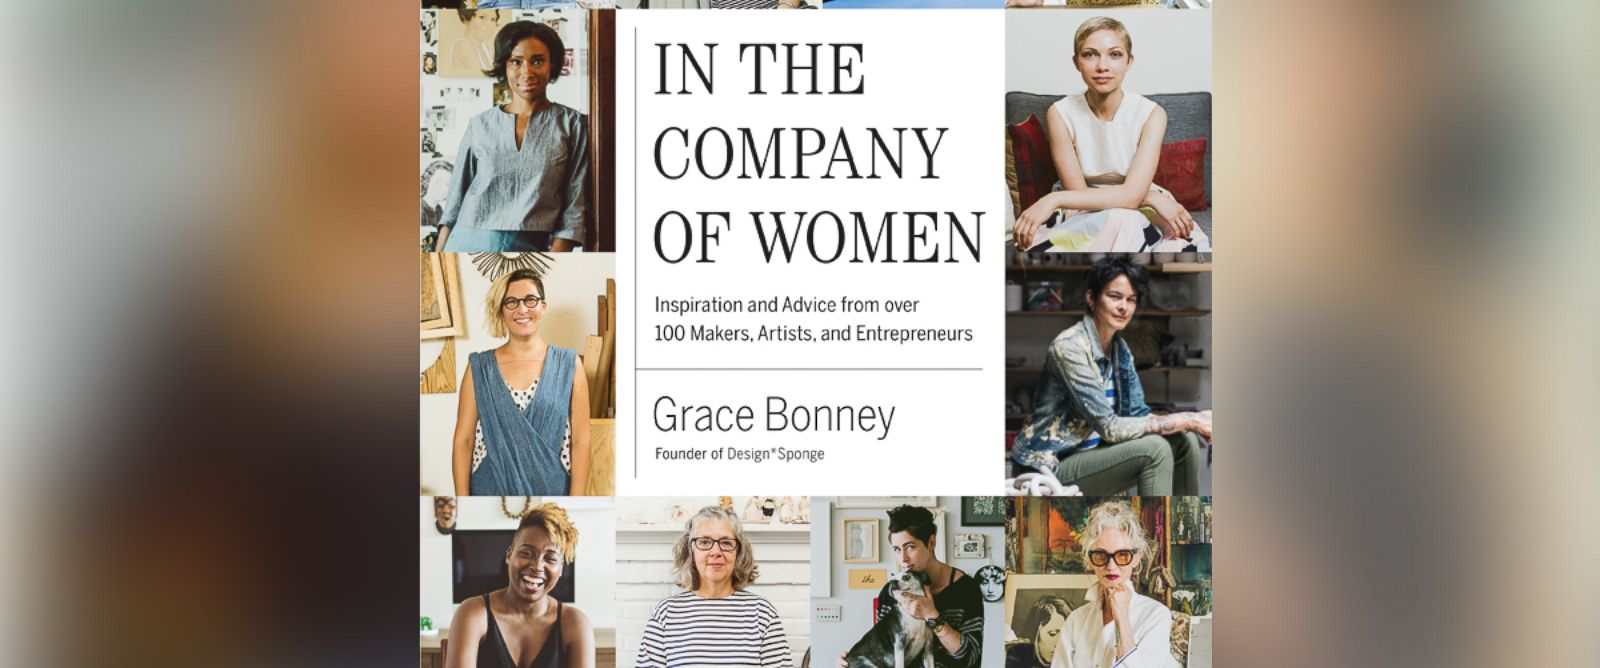 "PHOTO: Design Sponge founder Grace Bonney has authored a new book, ""In the Company of Women."""